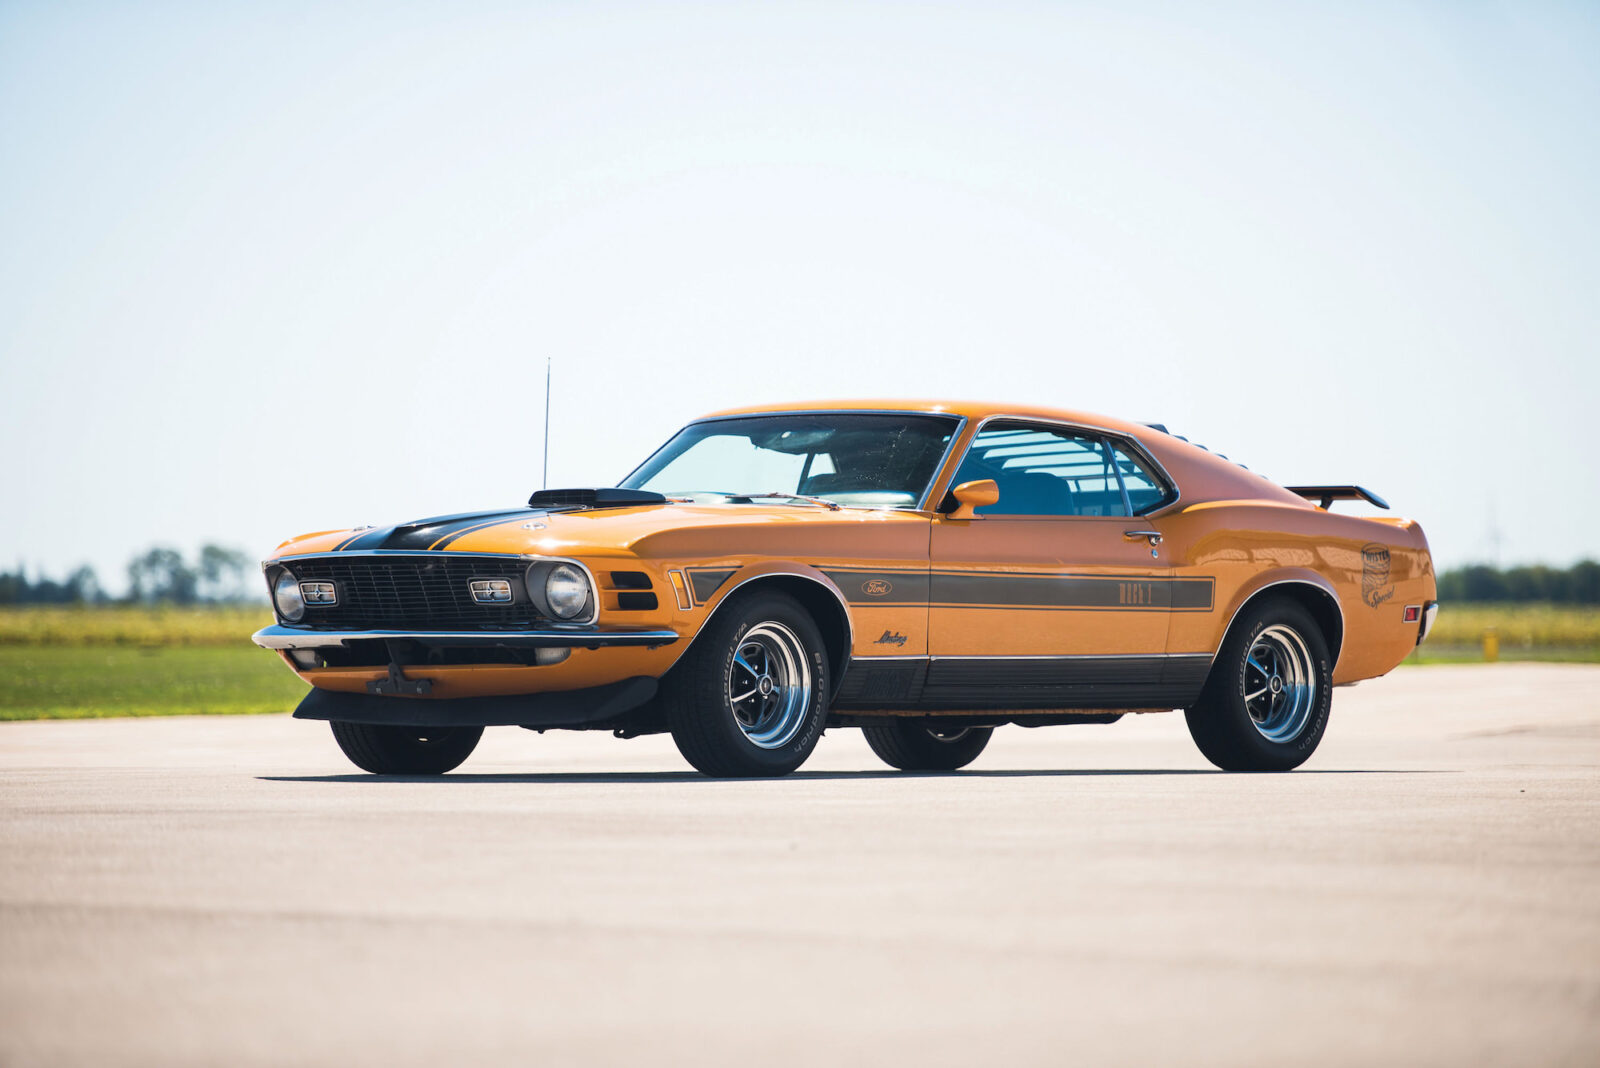 Kansas City Cars >> Ford Mustang Mach 1 Twister - Silodrome